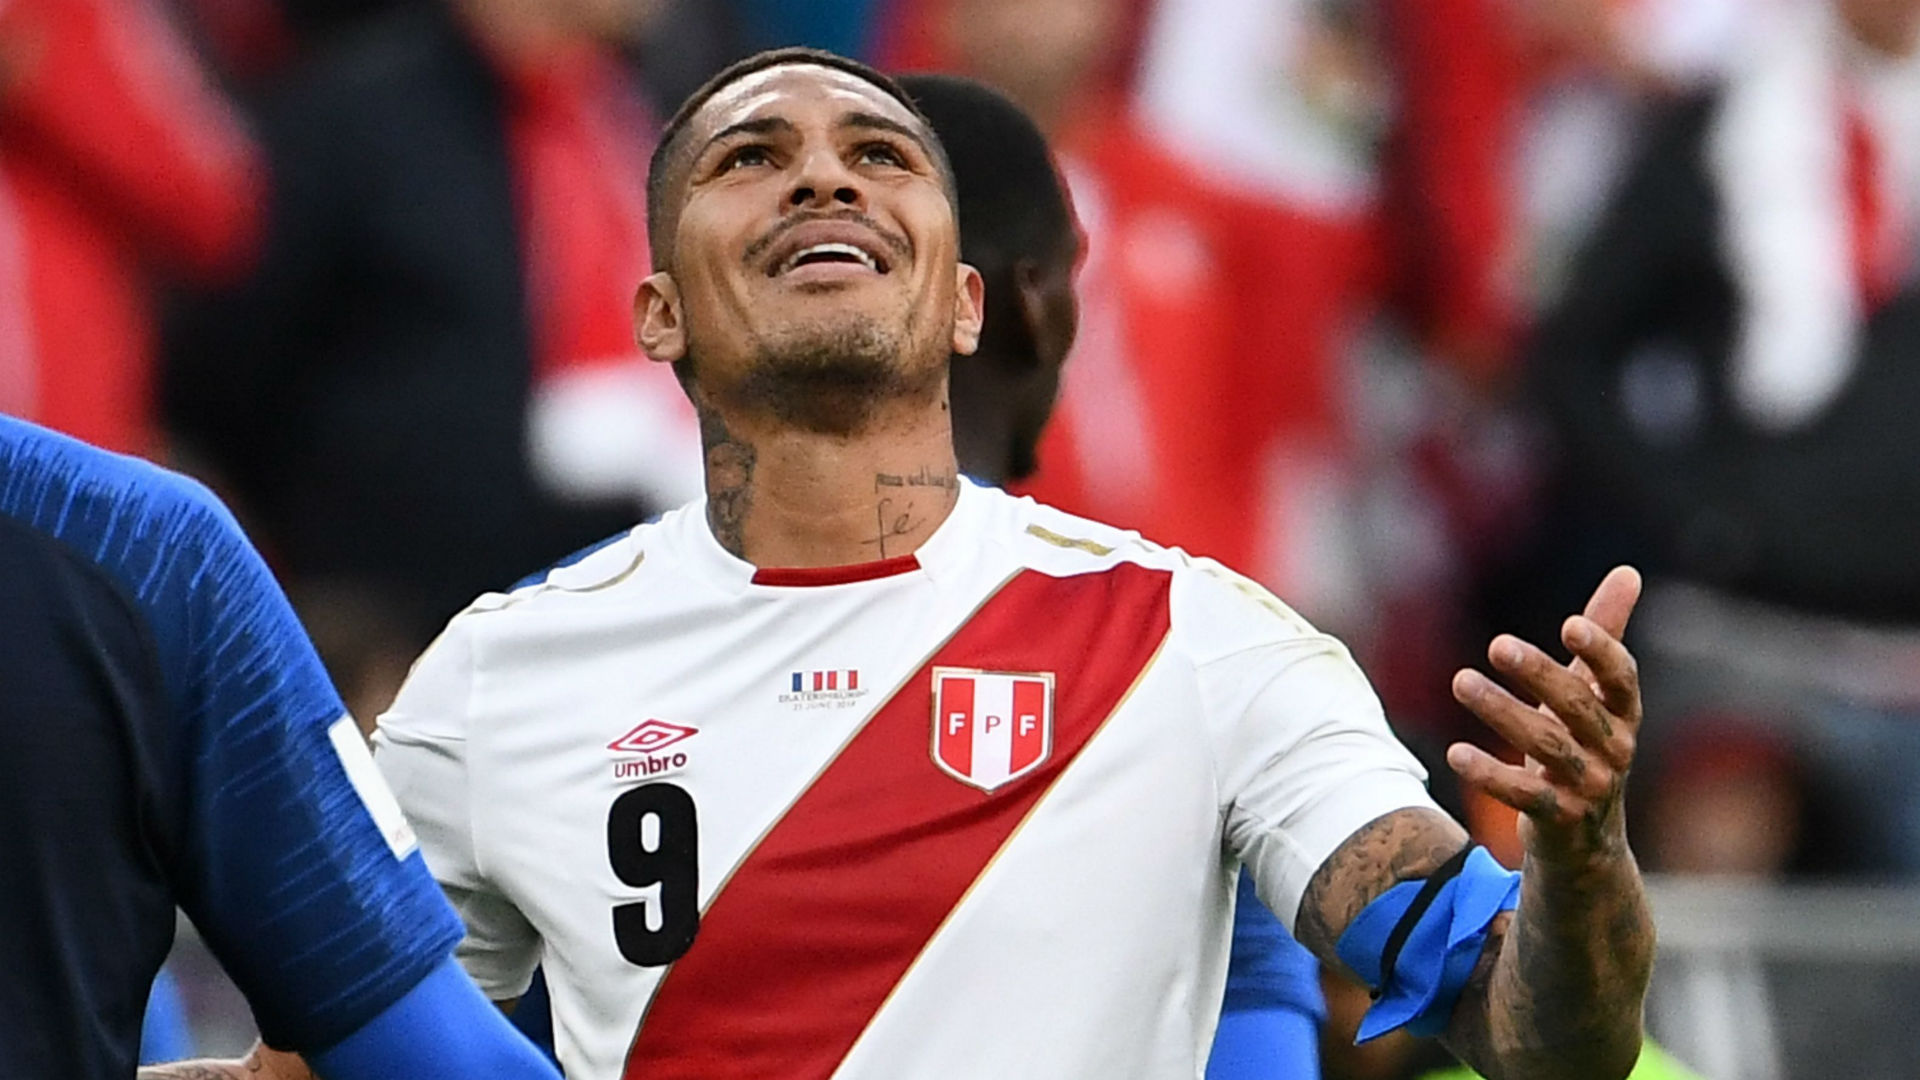 Paolo Guerrero Peru France World Cup